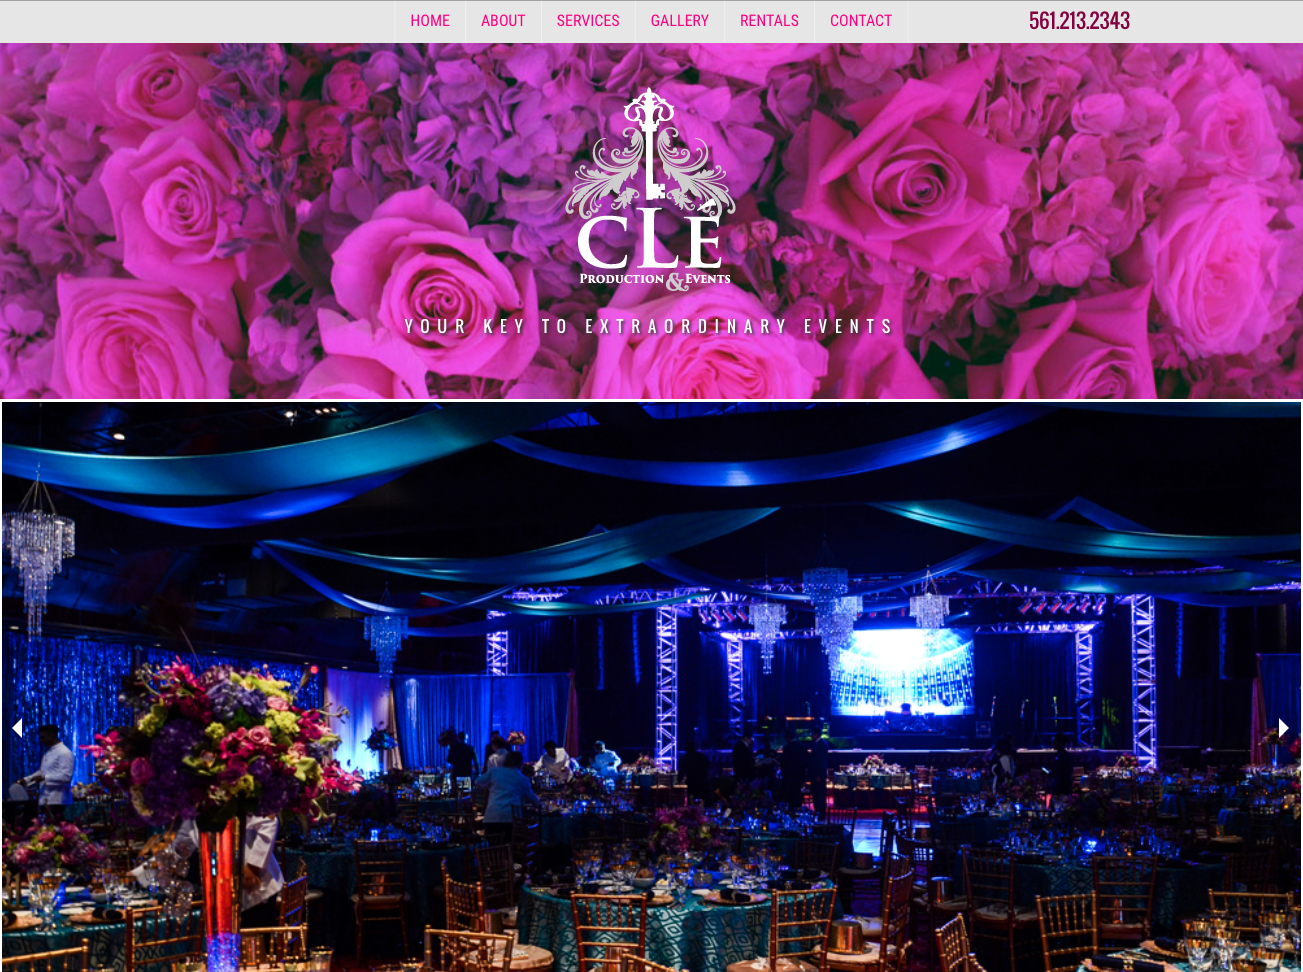 Clé Production and Events Website